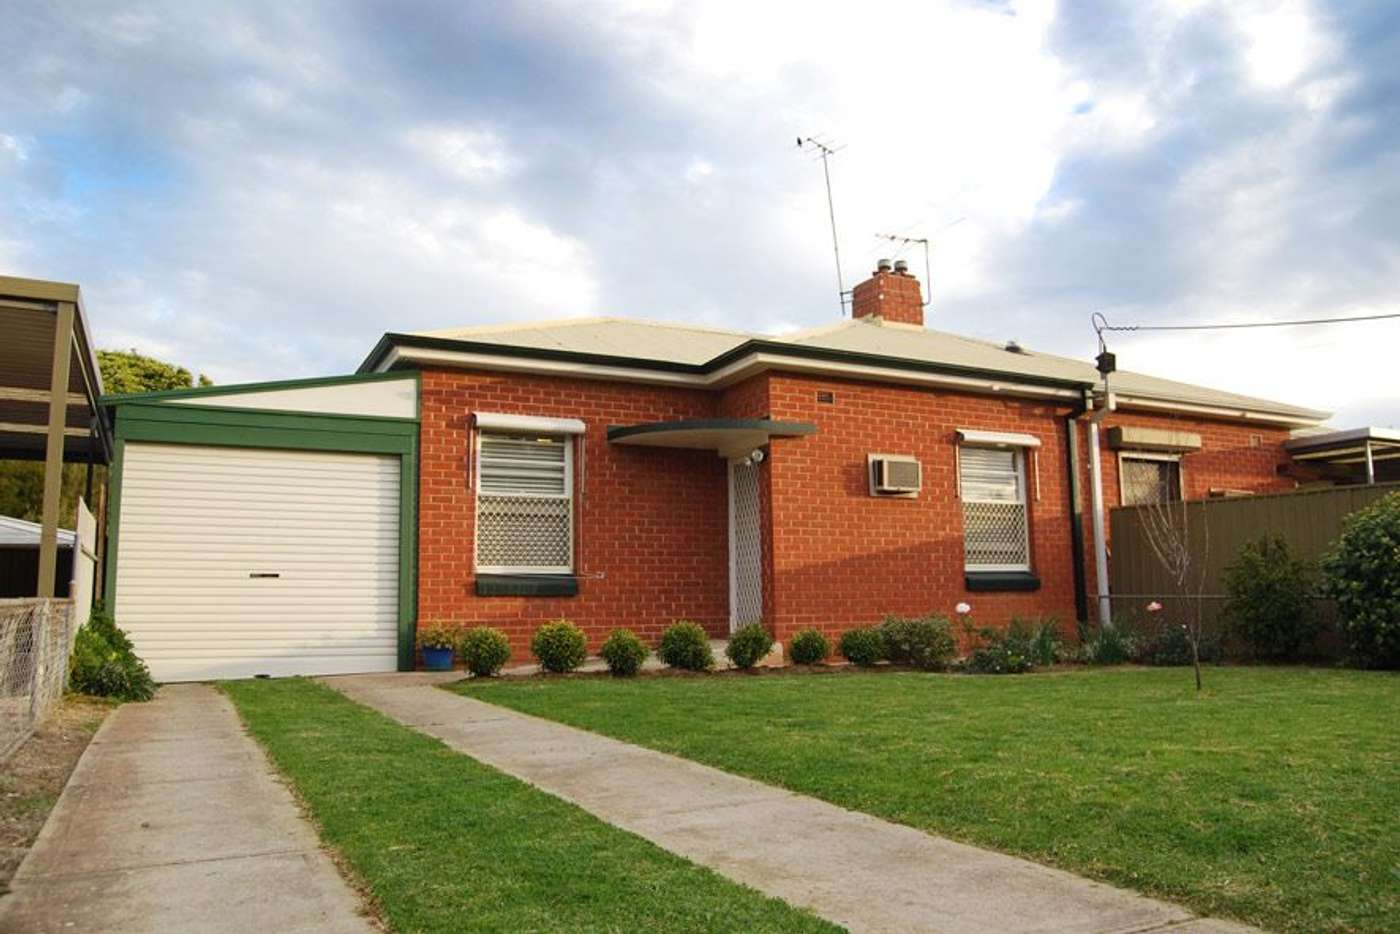 Main view of Homely house listing, 18 Vincent Street, South Plympton SA 5038